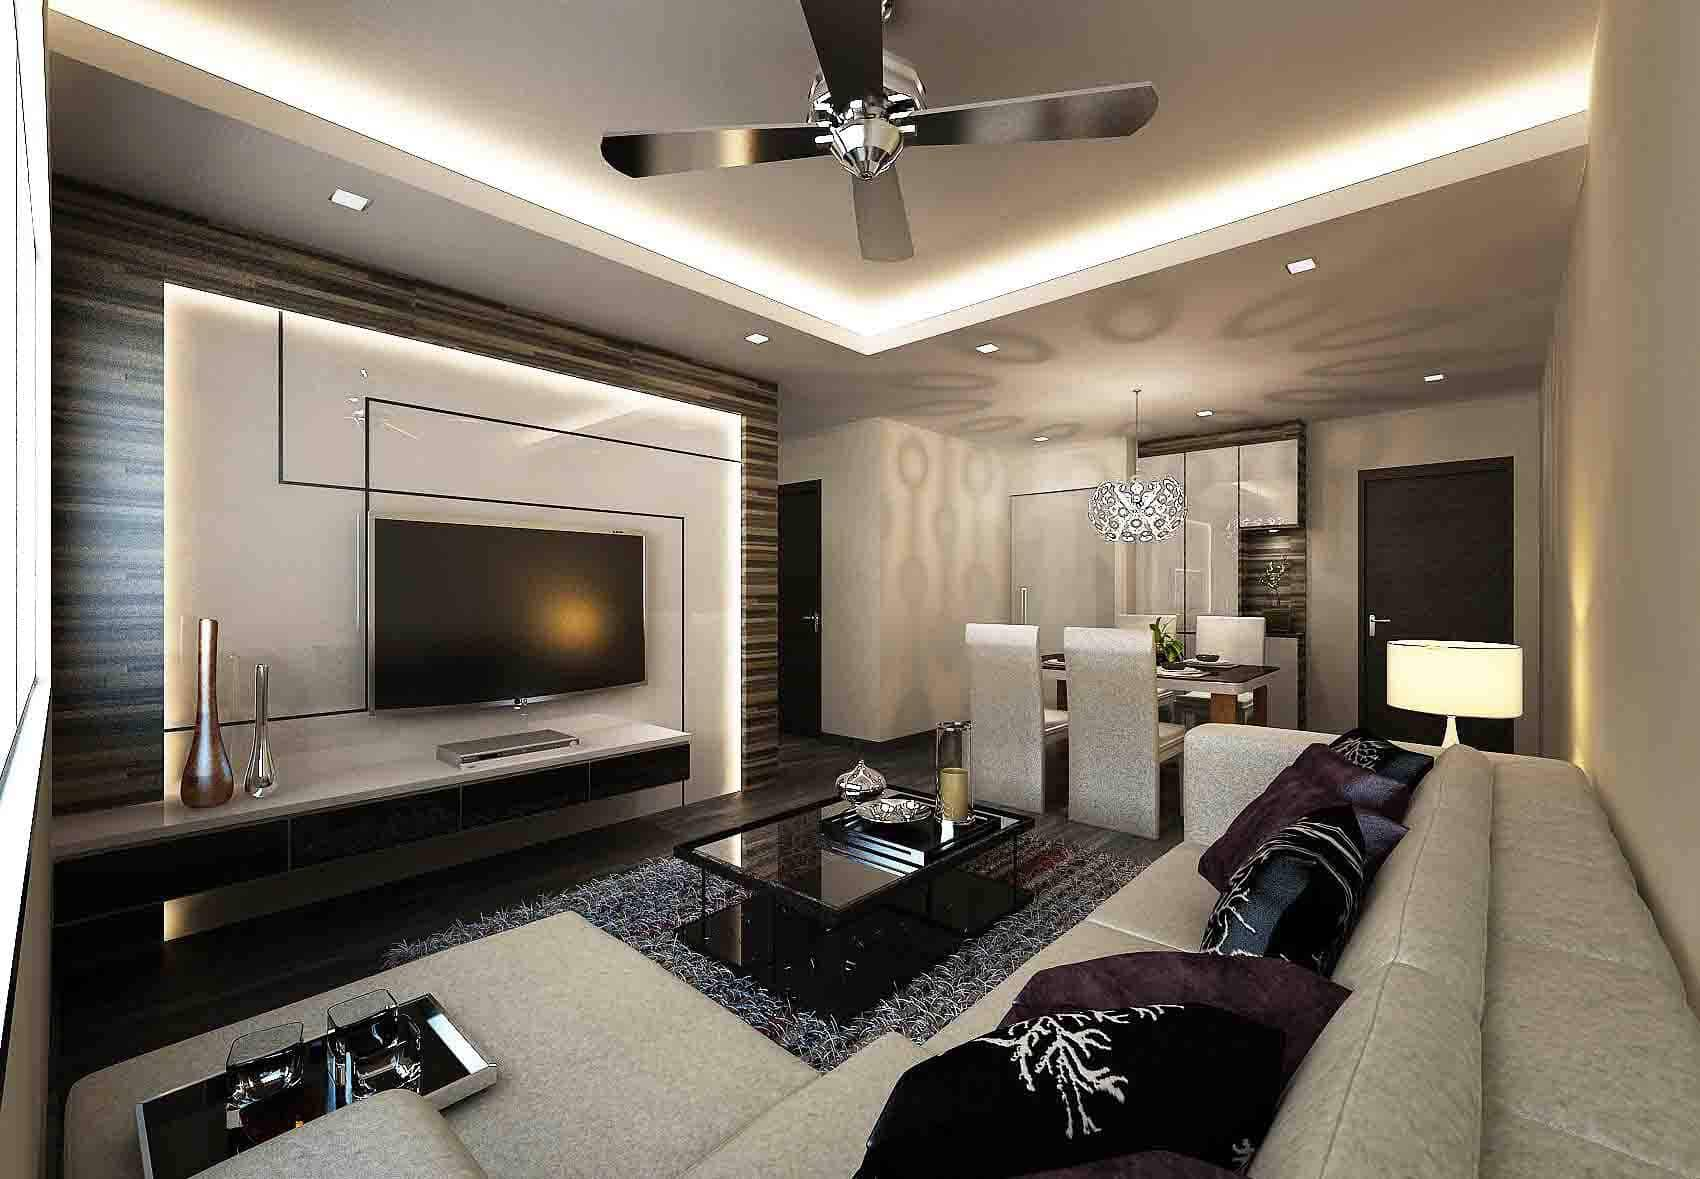 We Hope To Shed Some Light Upon The Living Room Design Ideas In This  Article. If You Want More Ideas To Think Creatively For Your Living Room,  ...